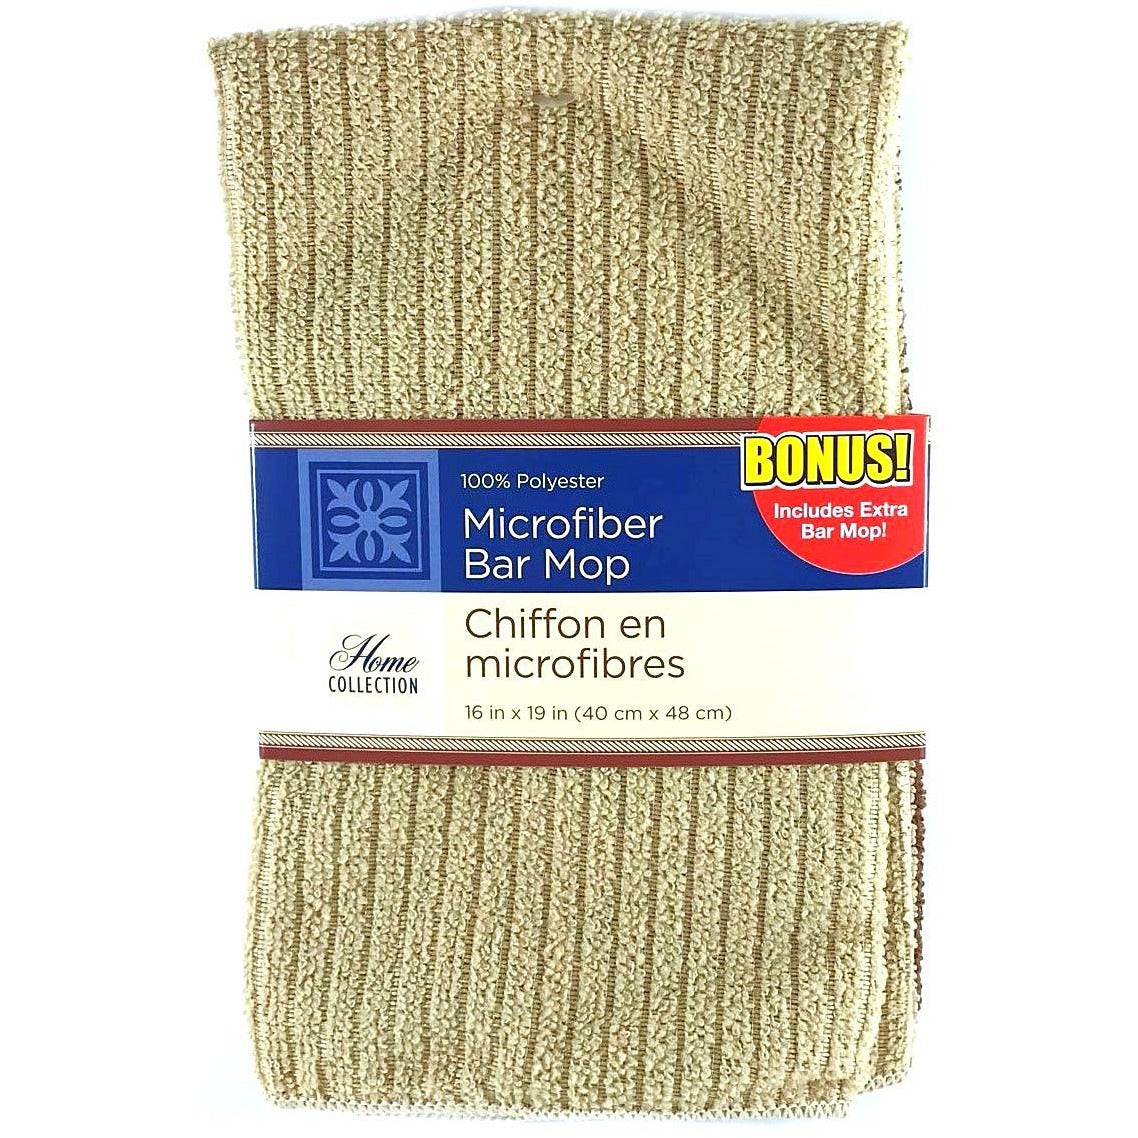 Home Collection Microfiber Bar Mop Towels 2 count packs- Biege & Brown